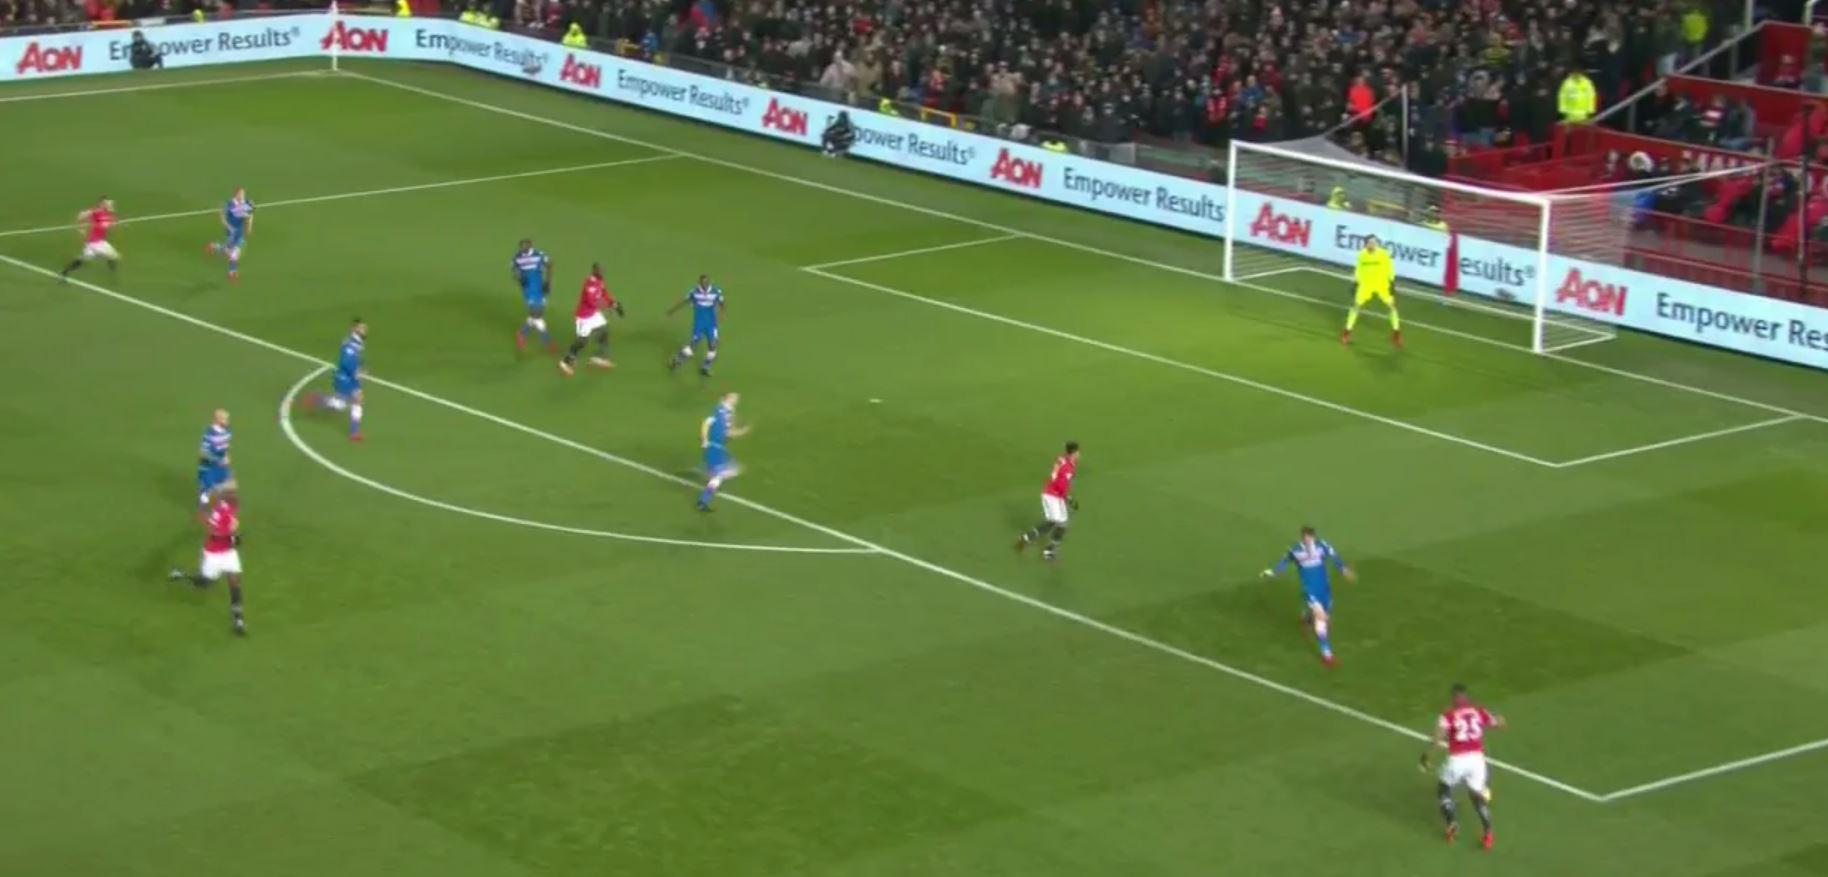 Valencia picked it up from Pogba on the right